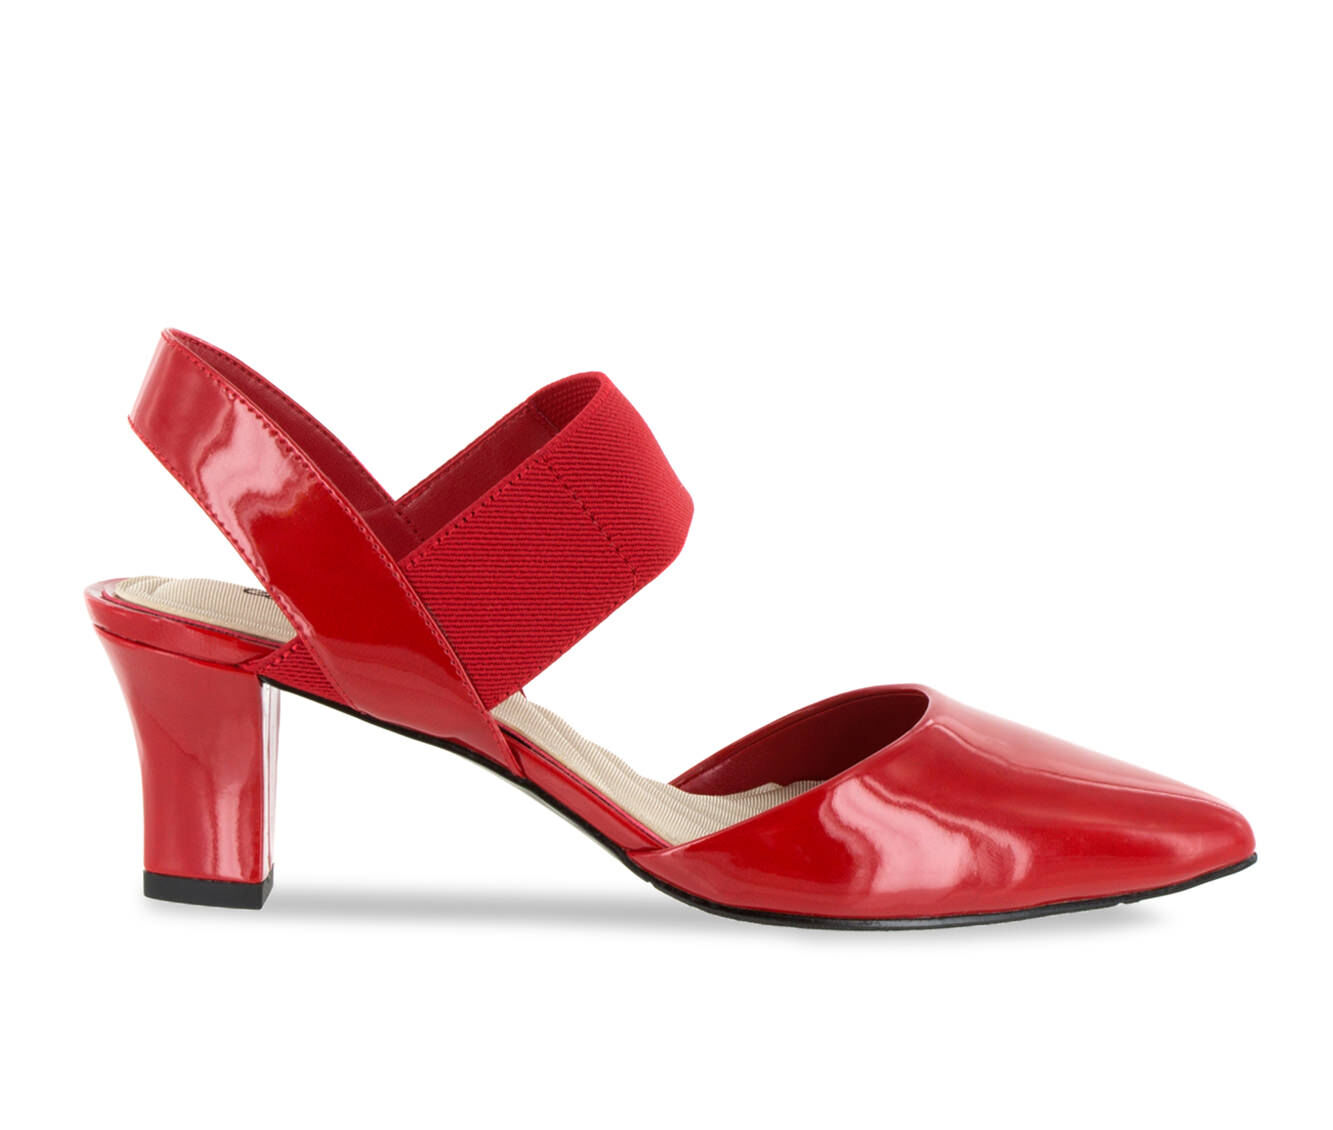 Women's Easy Street Vibrant Shoes Red Patent